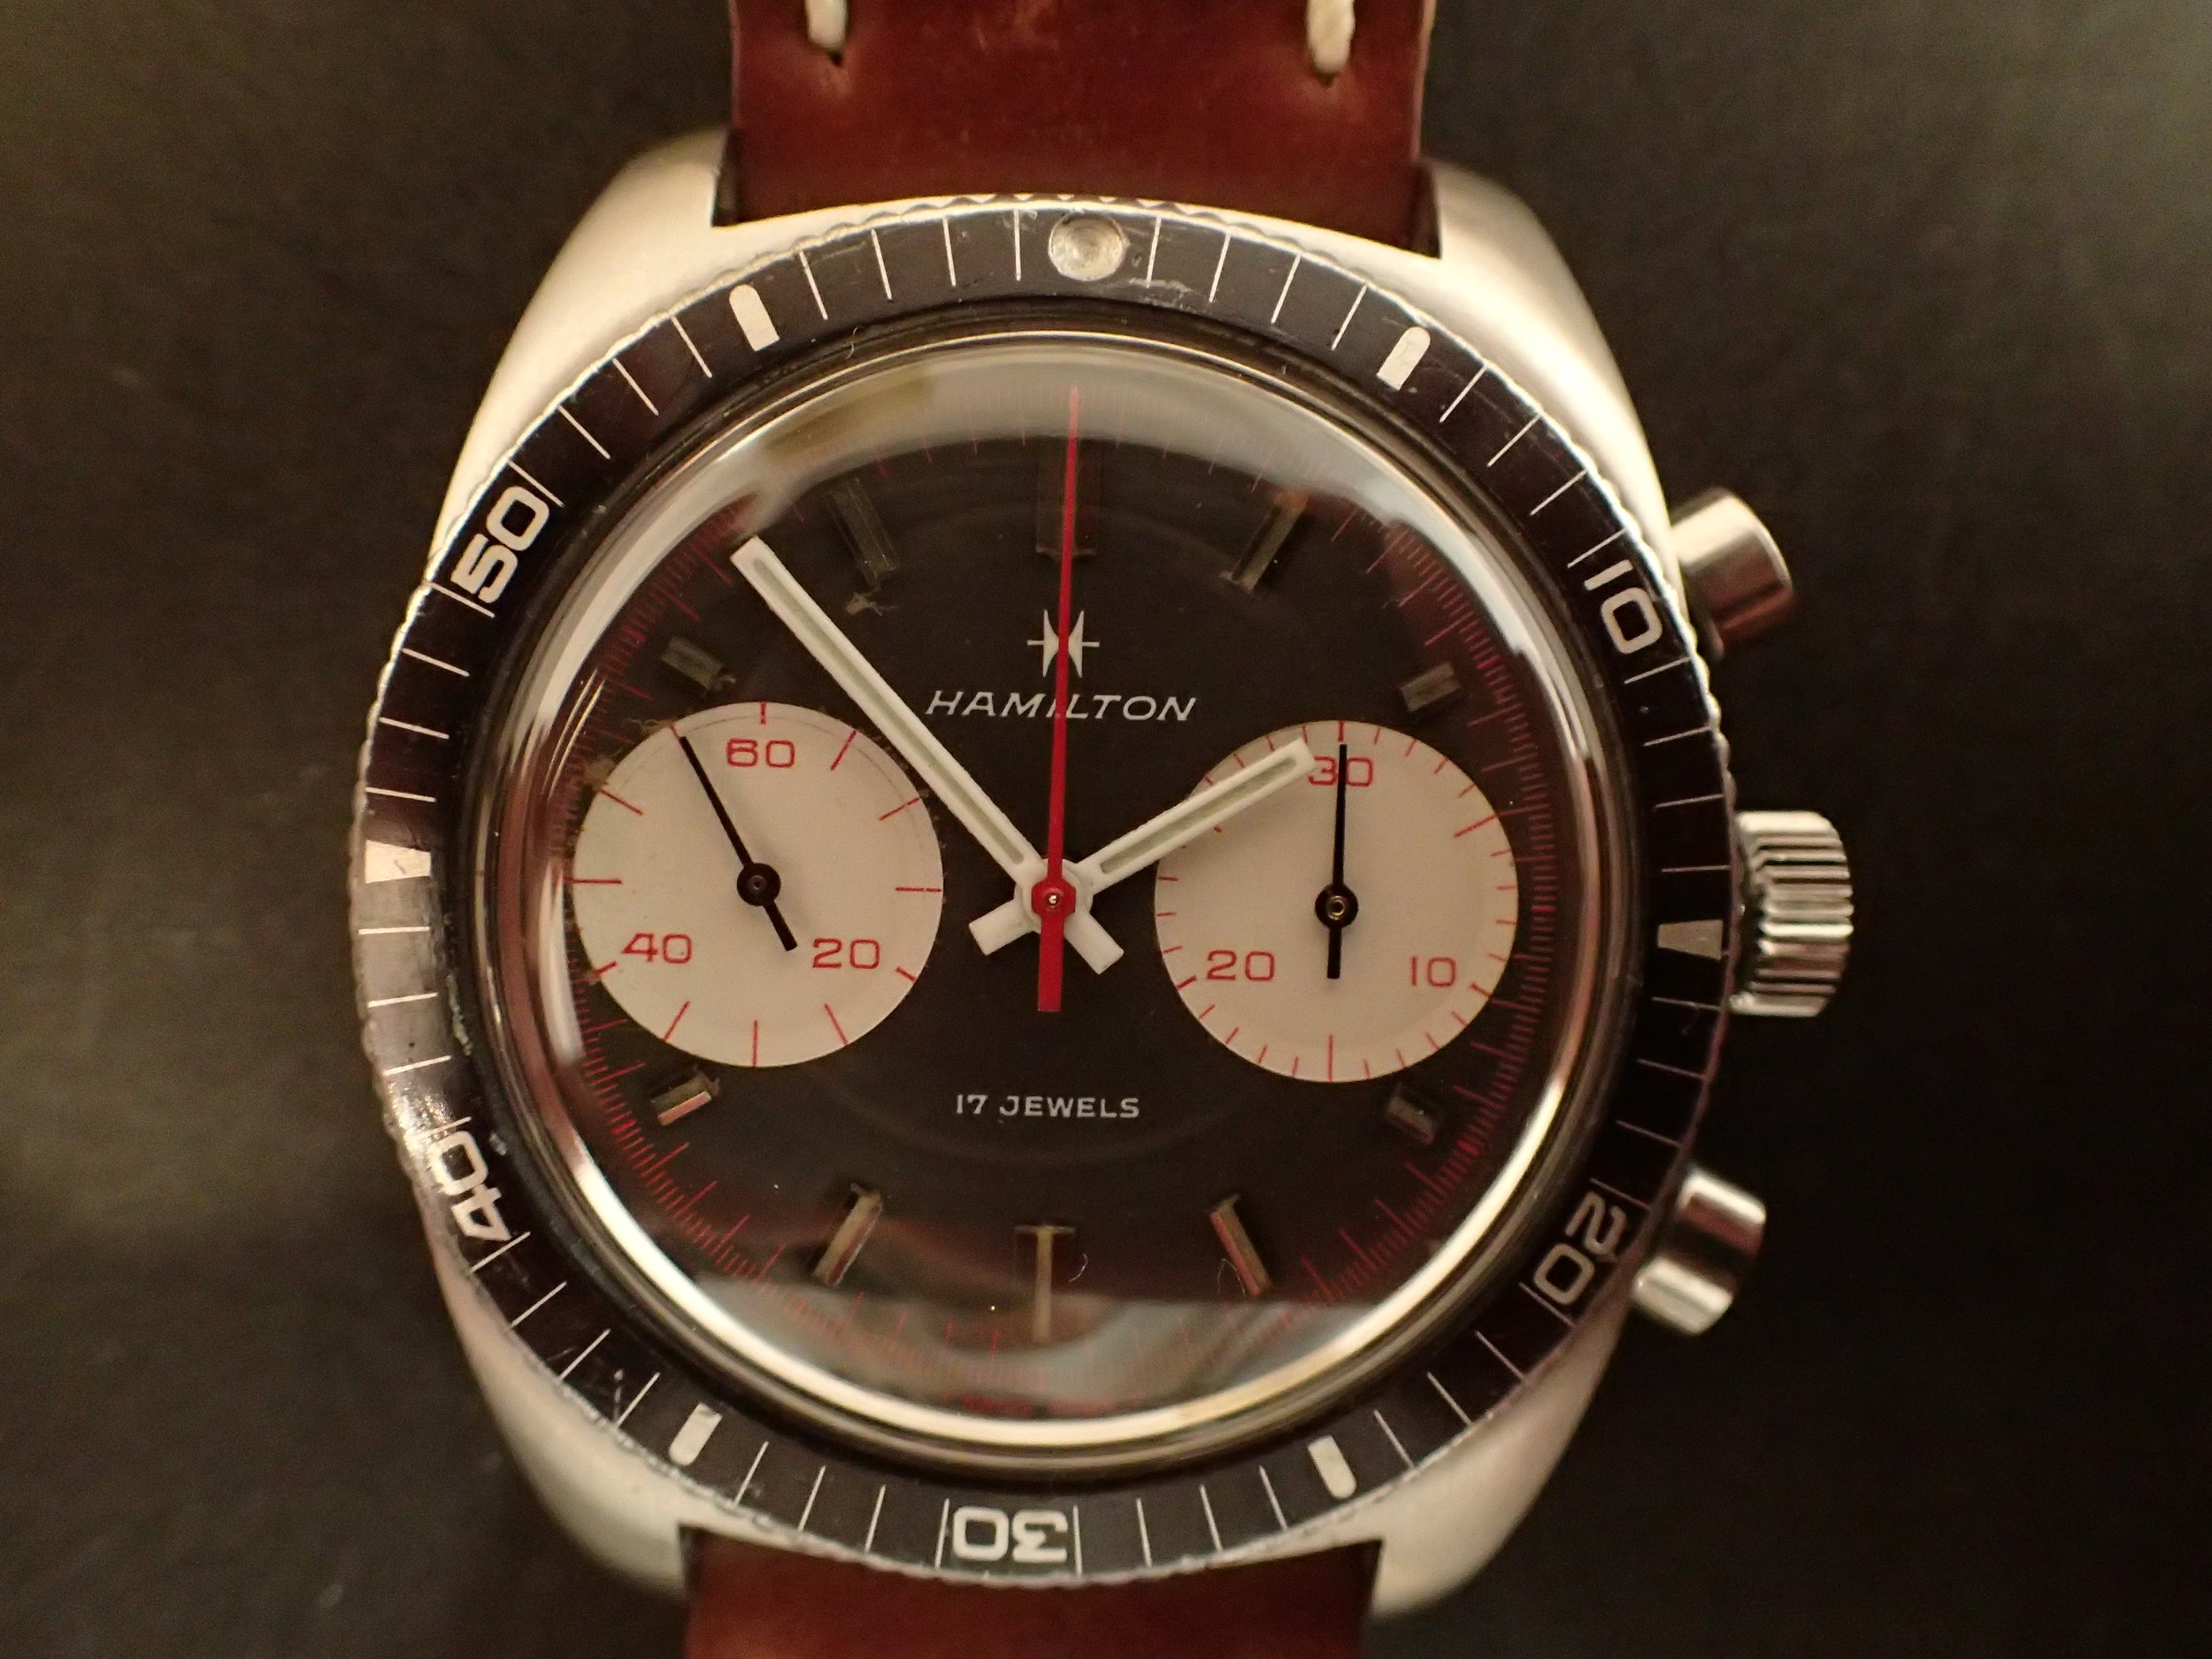 The Hamilton Chrono-Diver with Valjoux 7733. The lume pip is long gone from this one, a common malady.